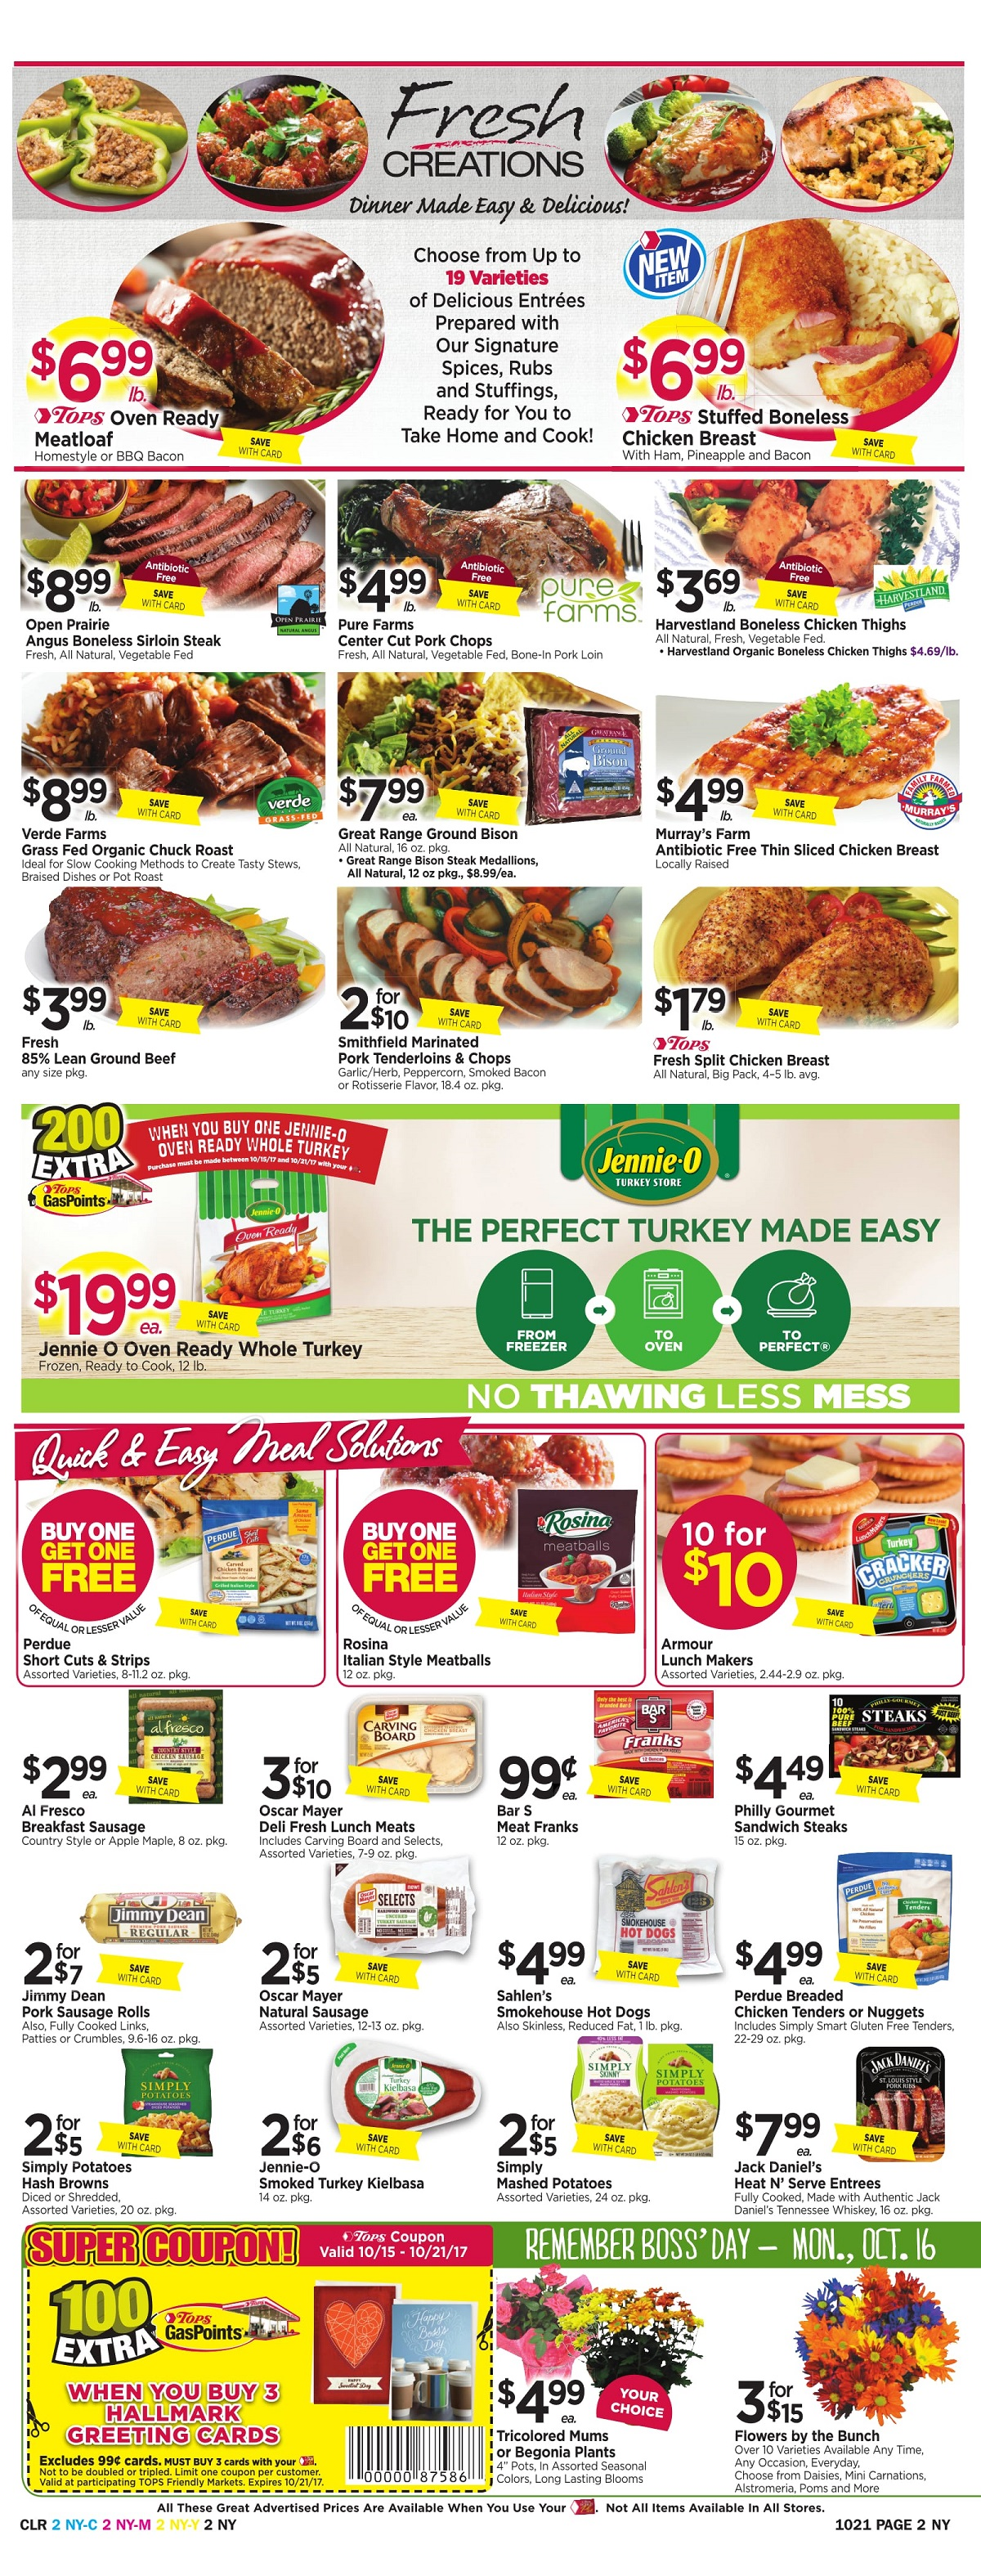 Tops Markets Ad Preview Week 10 15 Page 2